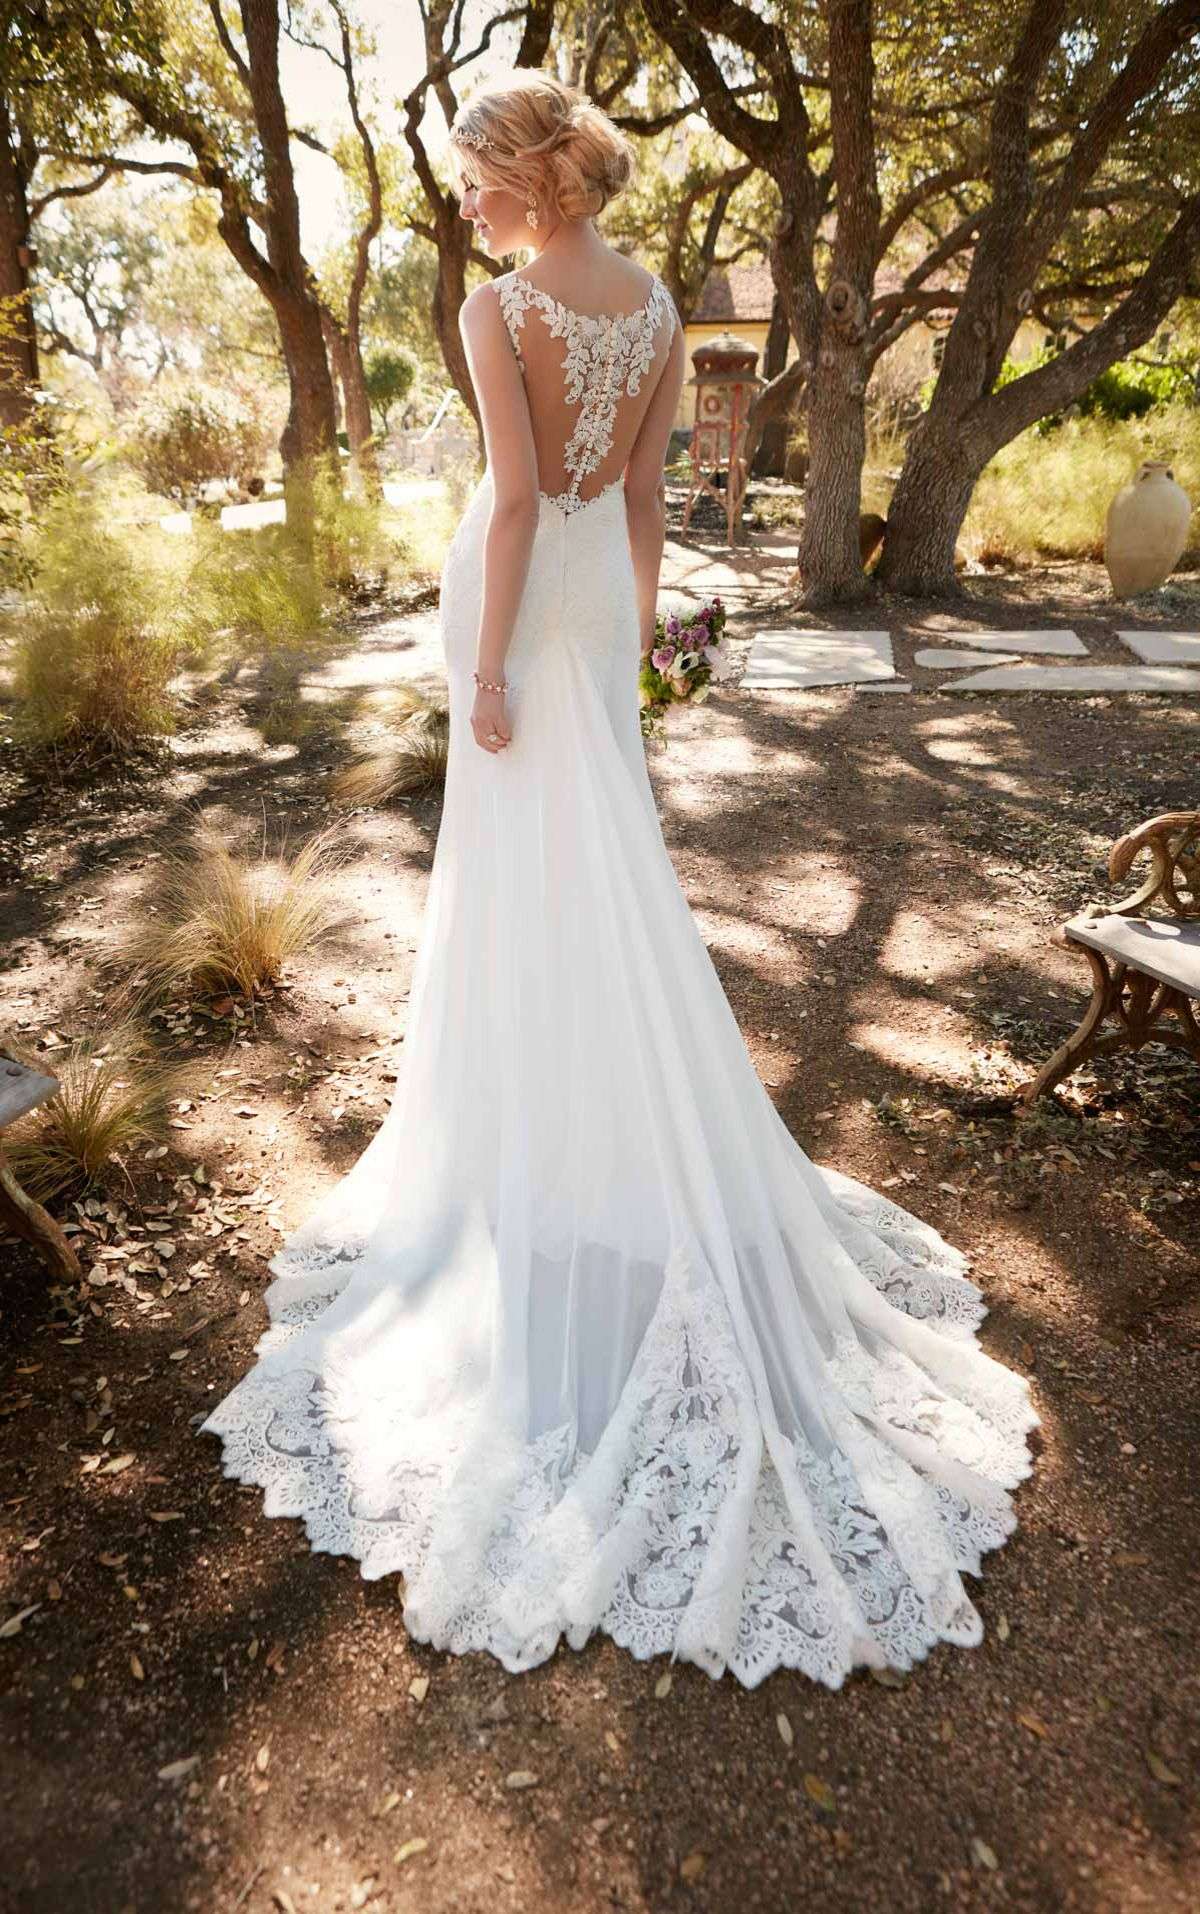 b8622f16b228 This chiffon sheath dress from Essense of Australia radiates romantic  glamour. It features a gorgeous butterfly back and a corded-lace train.